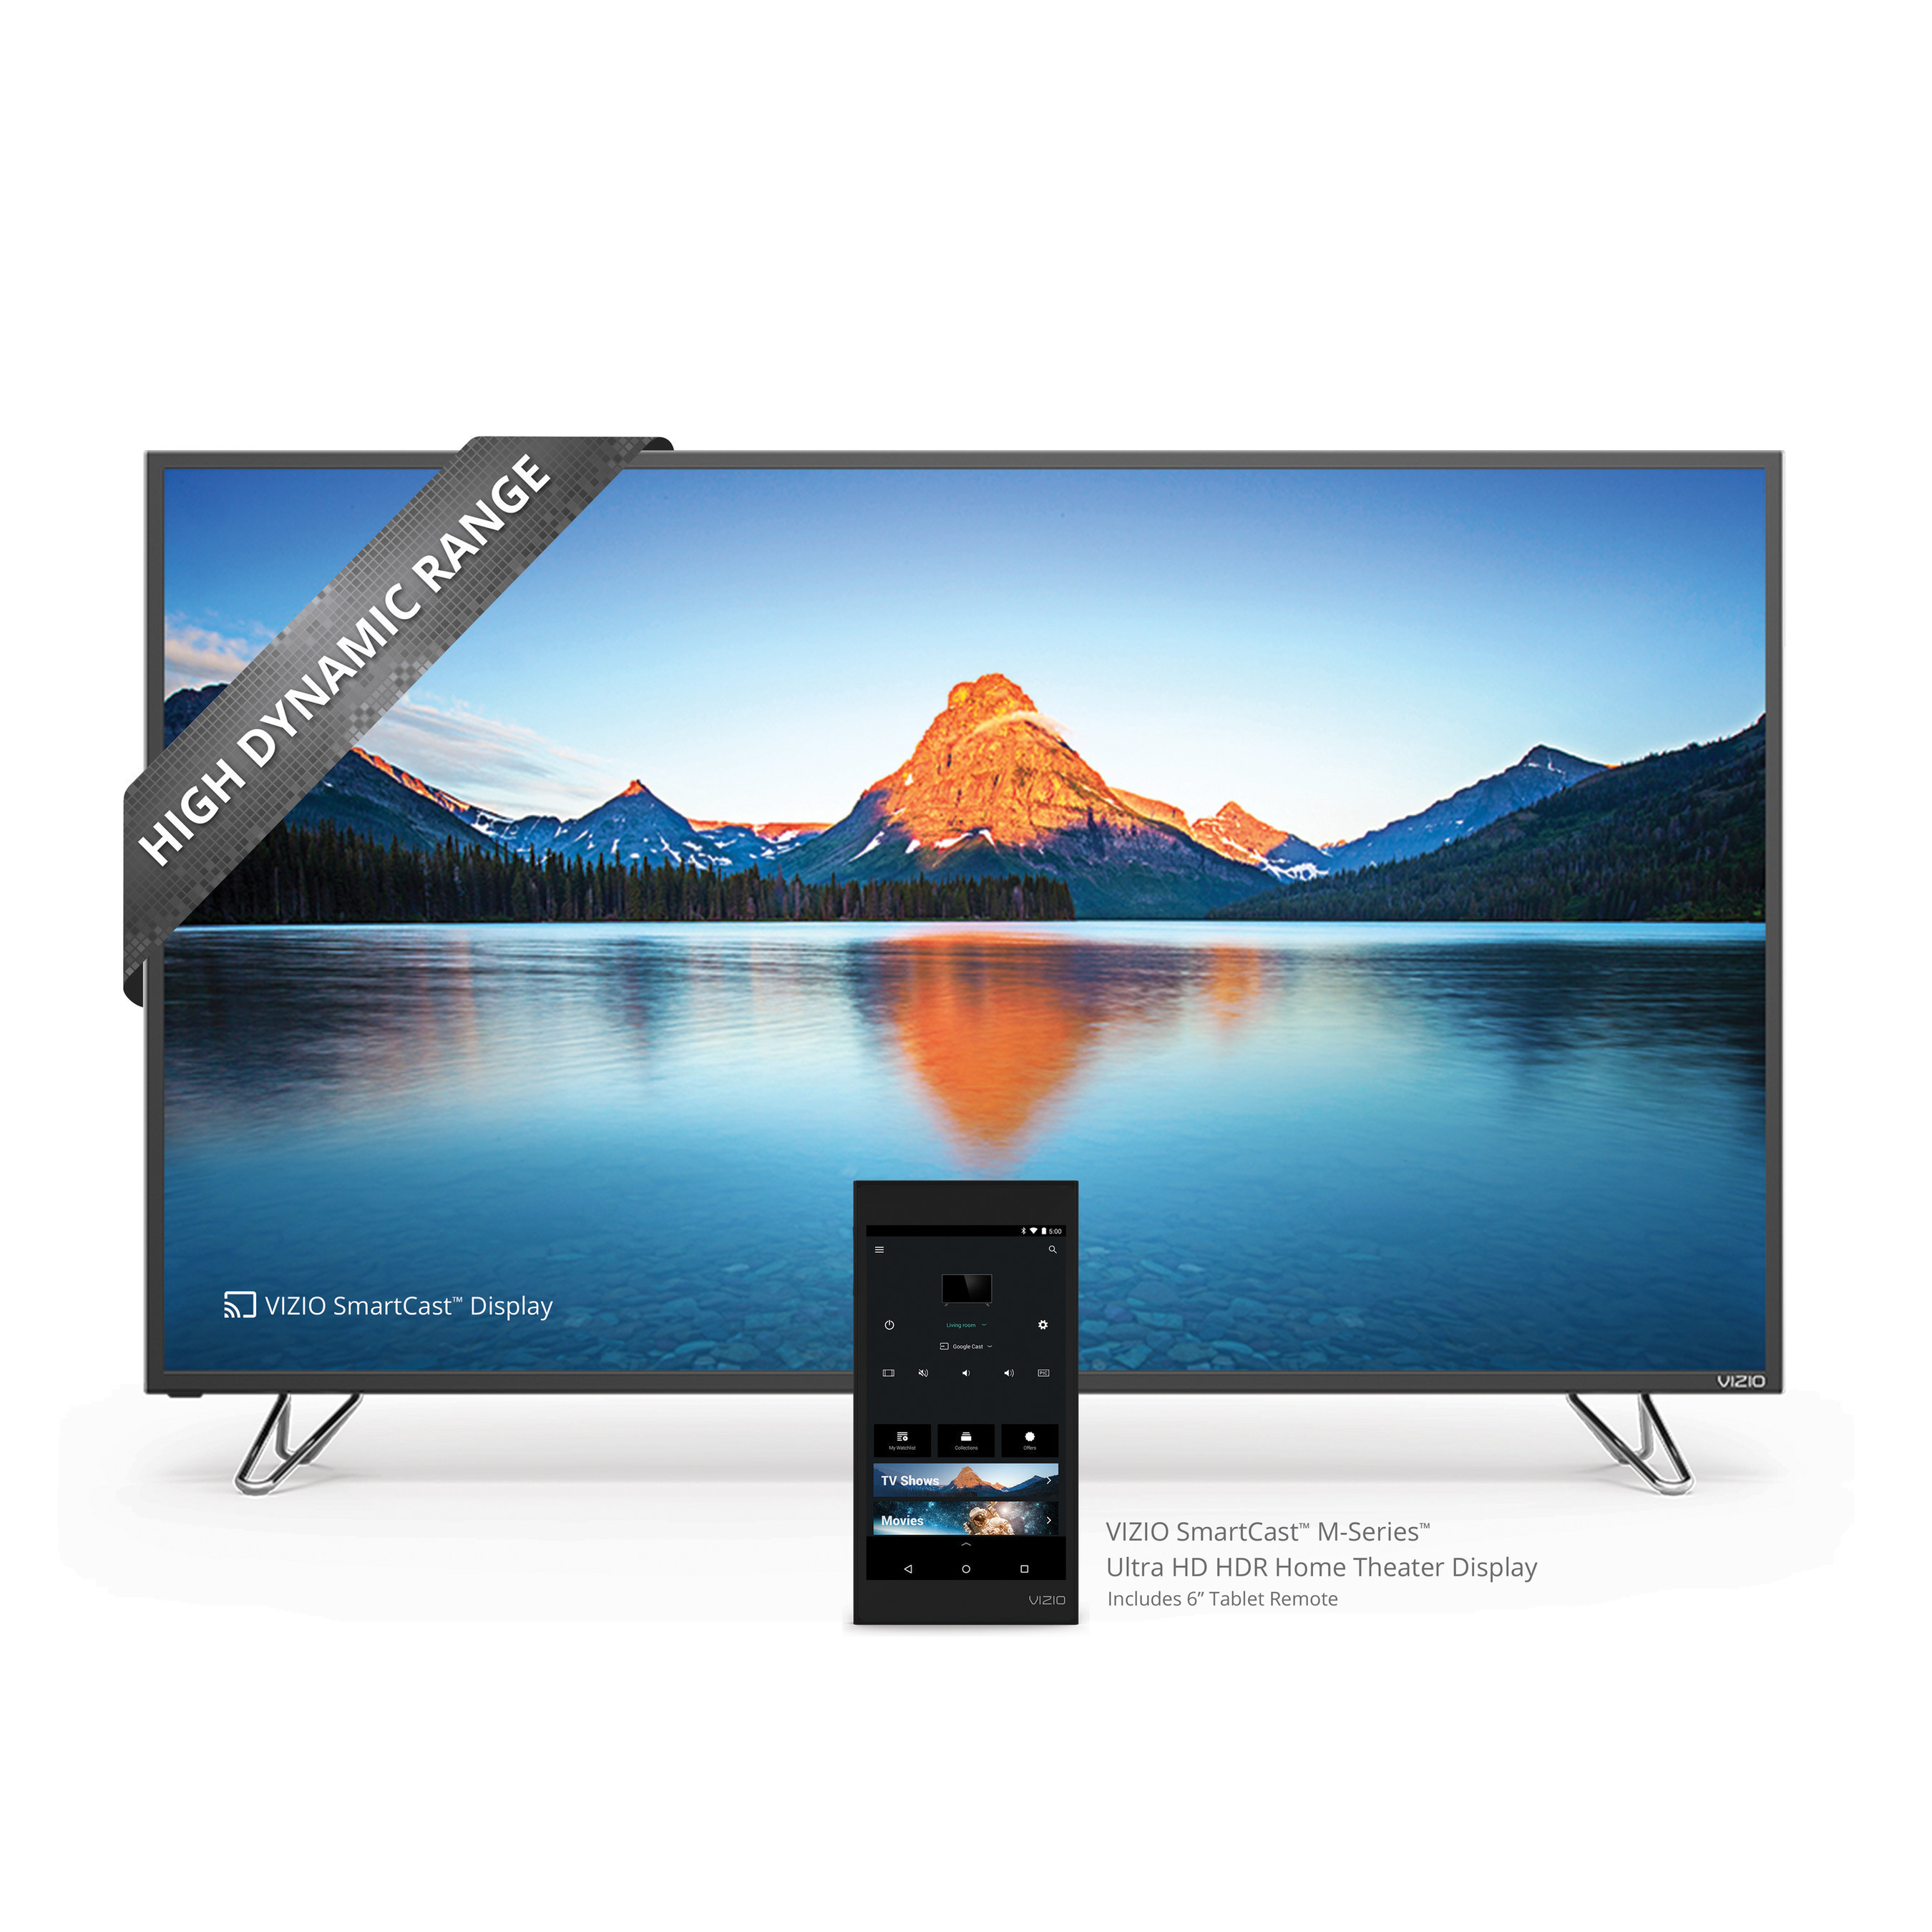 """VIZIO Expands Next Generation Smart Entertainment Ecosystem with introduction of All-New VIZIO SmartCast M-Series Ultra HD HDR Home Theater Display. Collection Offers Ultra HD Featuring High Dynamic Range with Dolby Vision Support and Includes a 6"""" Tablet Remote for Best-In-Class Entertainment Experience."""